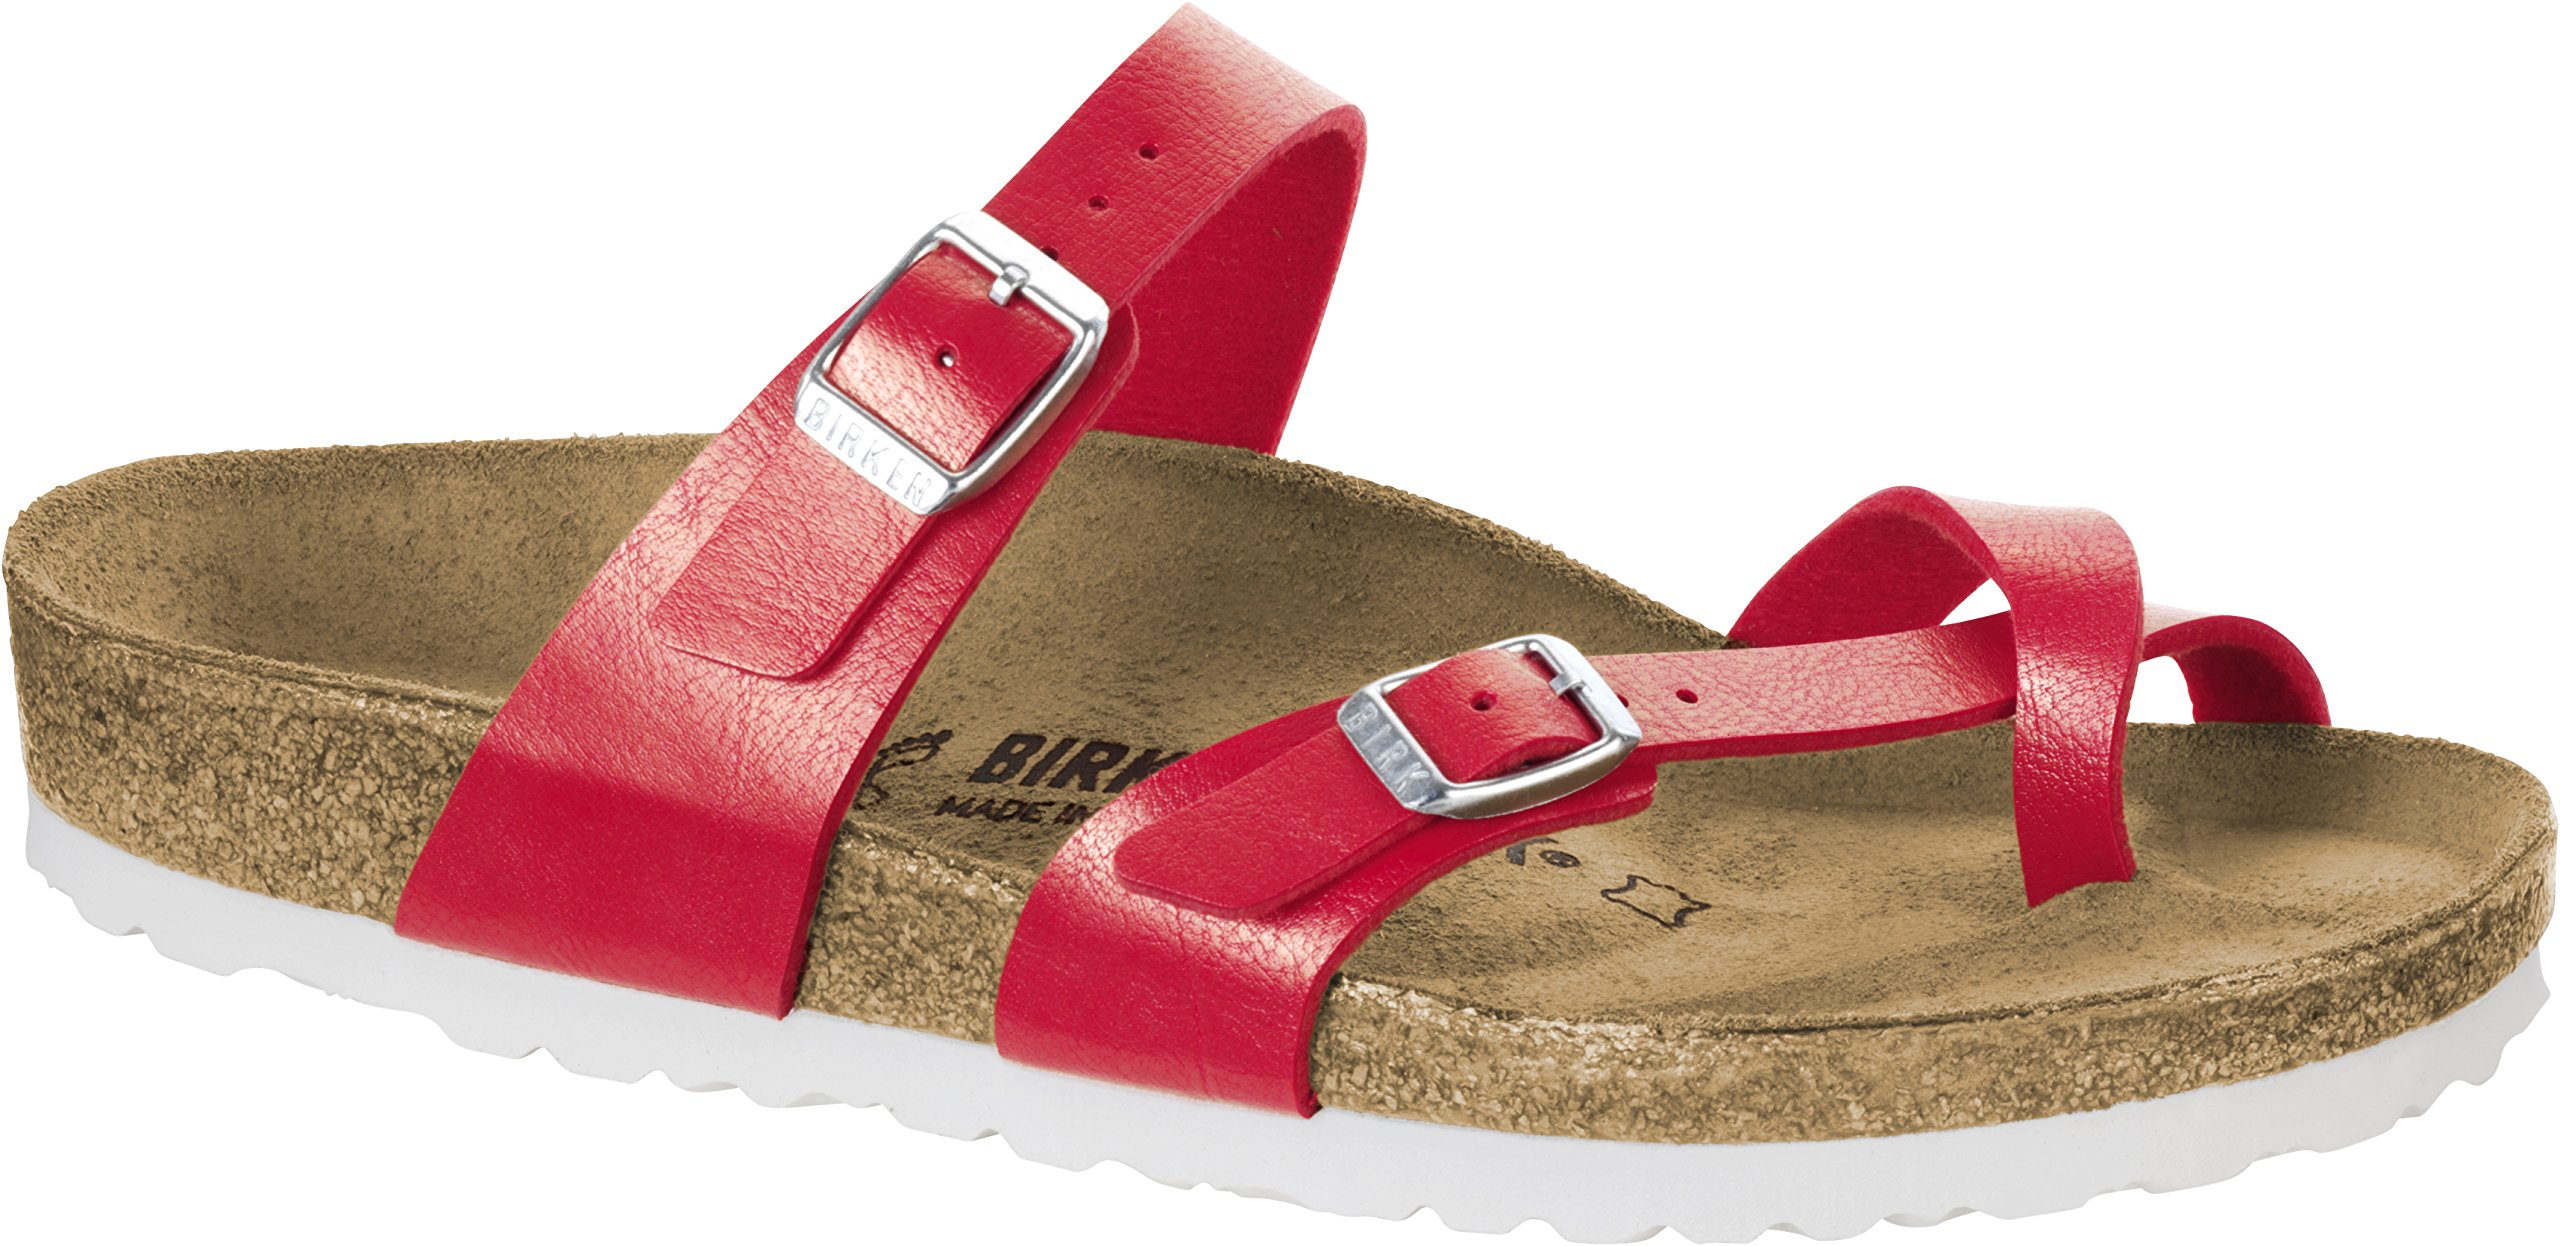 Birkenstock New Women's Mayari Sandal Graceful Hibiscus BF 36 R